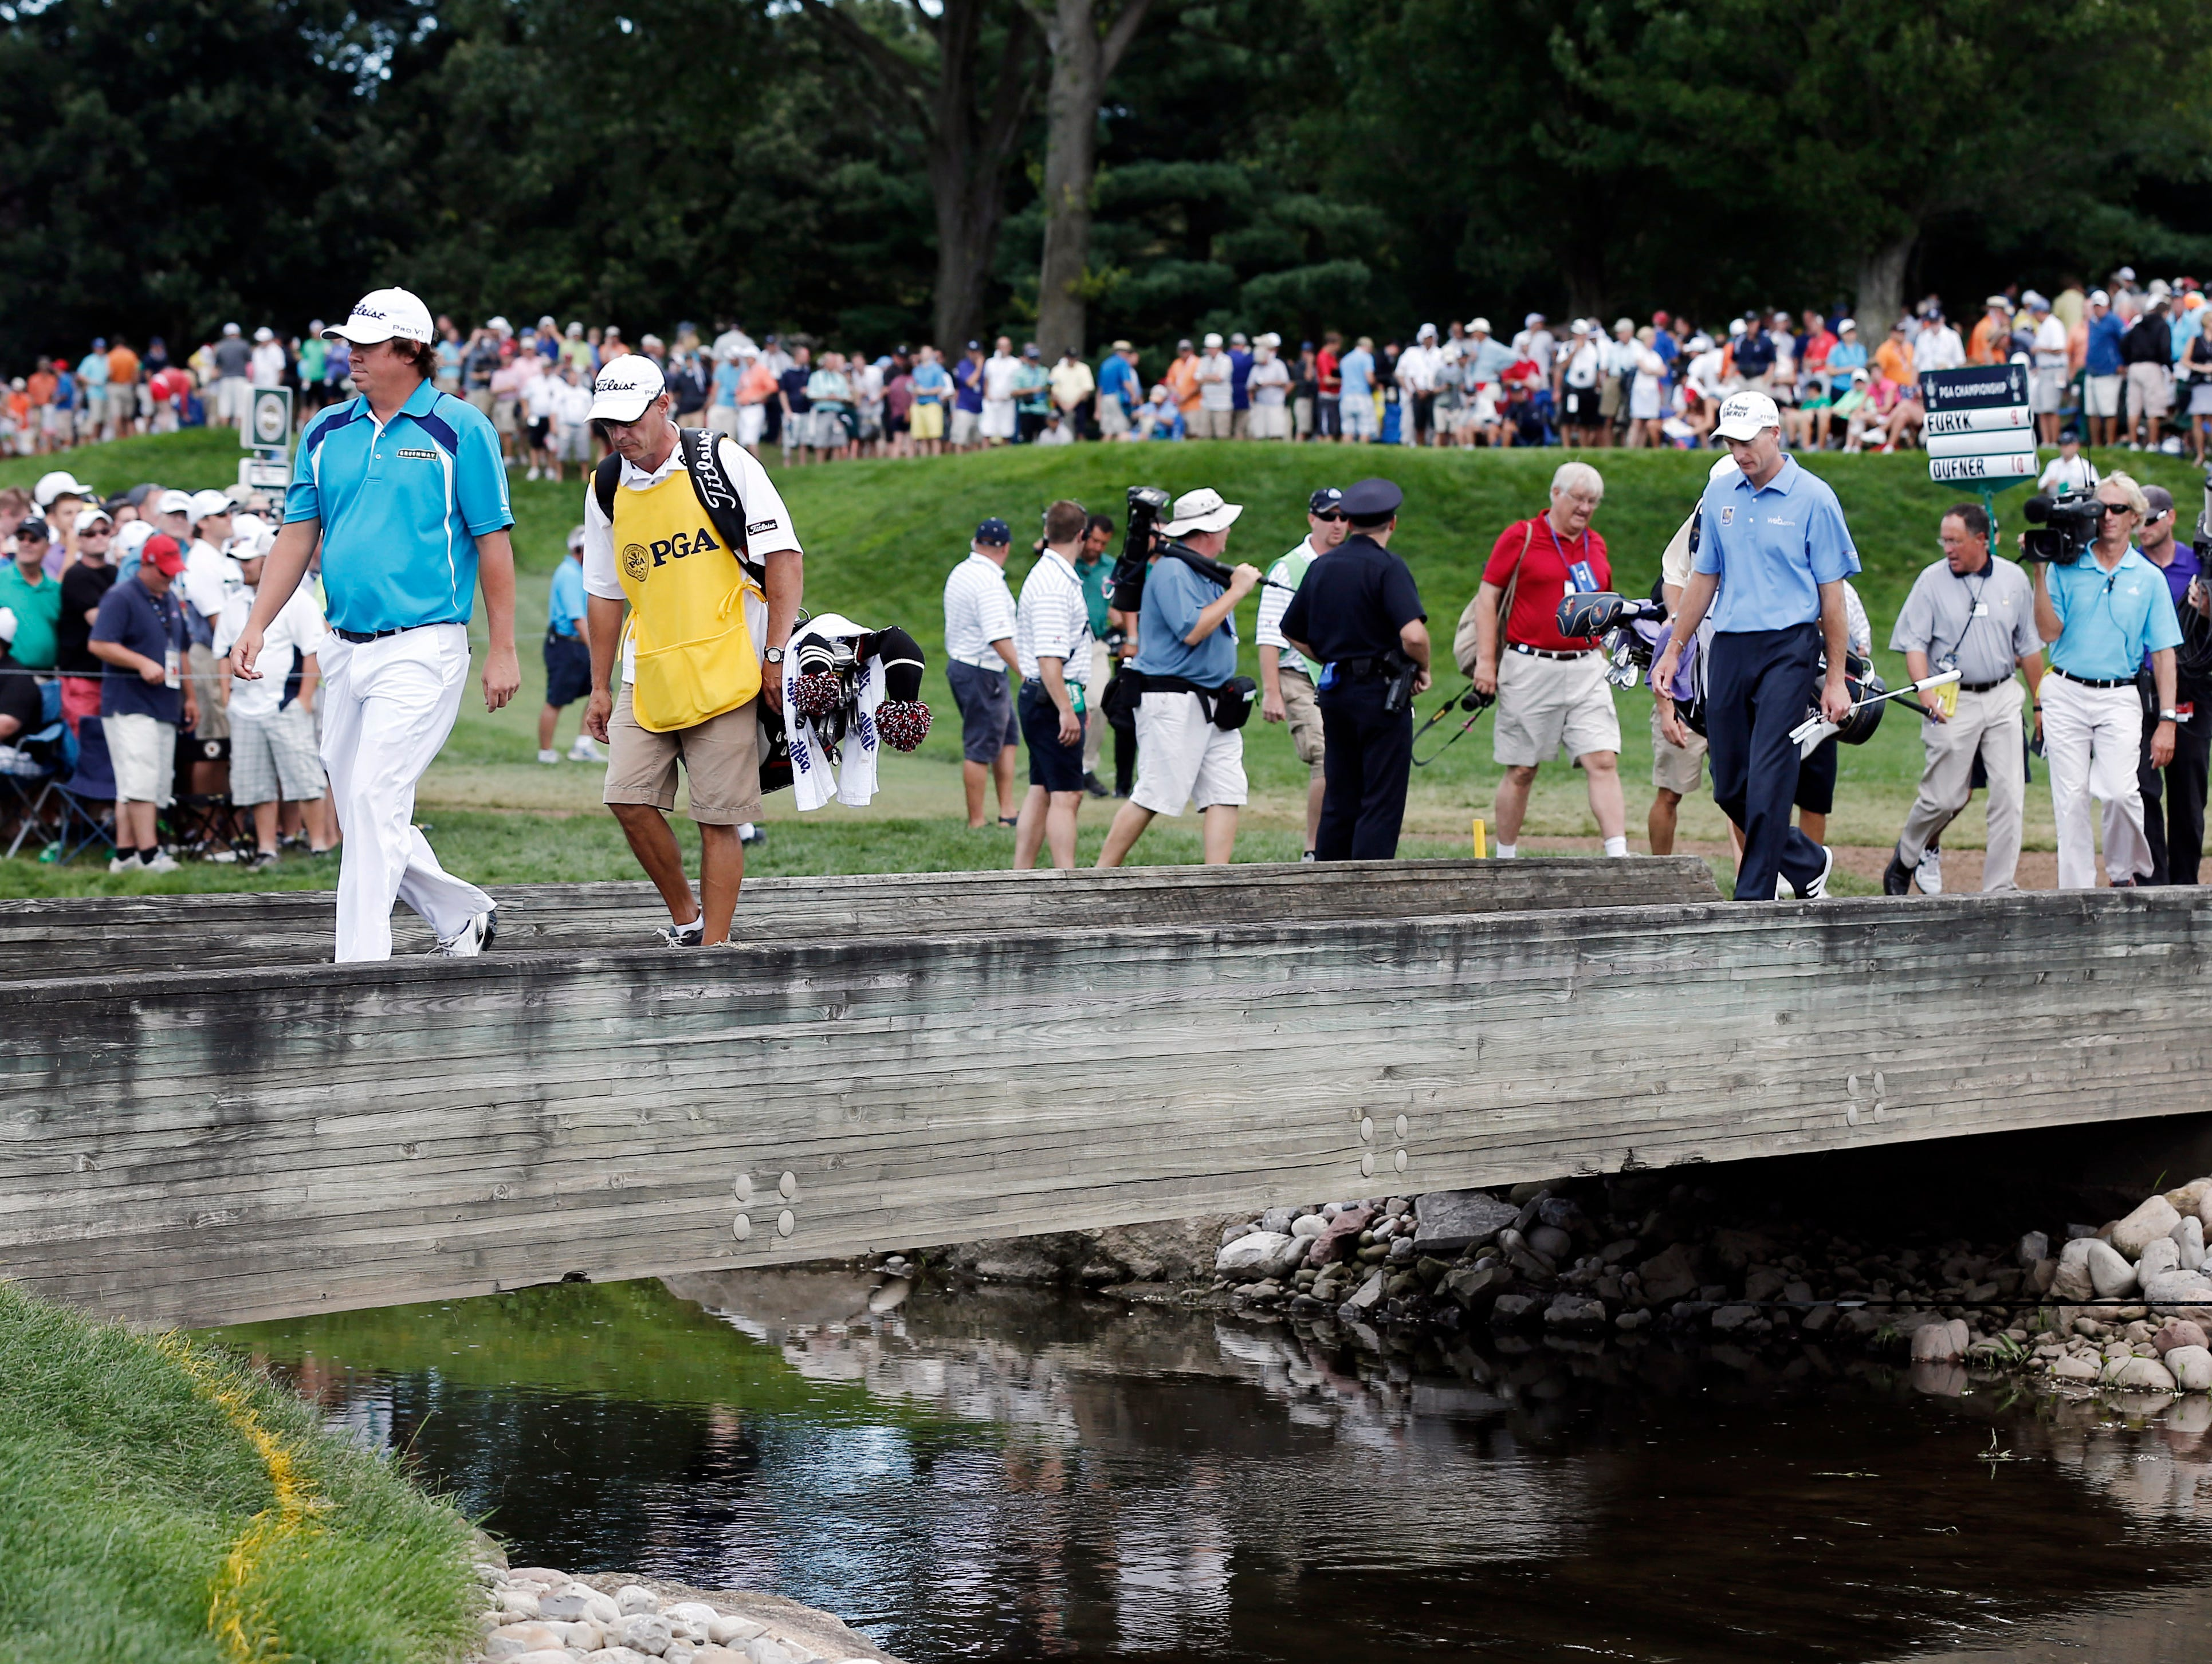 Jason Dufner and Jim Furyk walk to the sixth green.